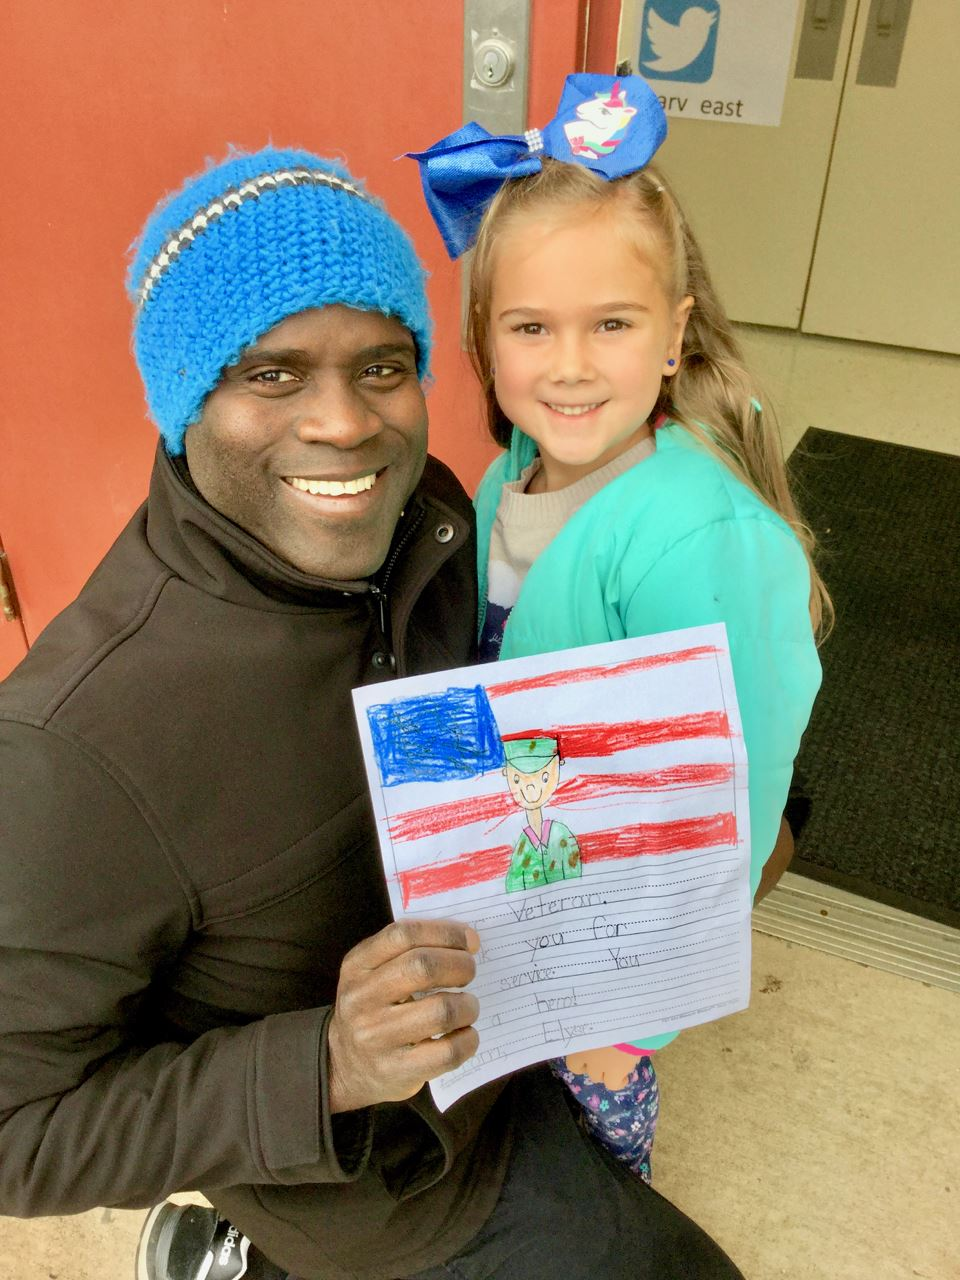 Students writes letter to veteran who works at her school